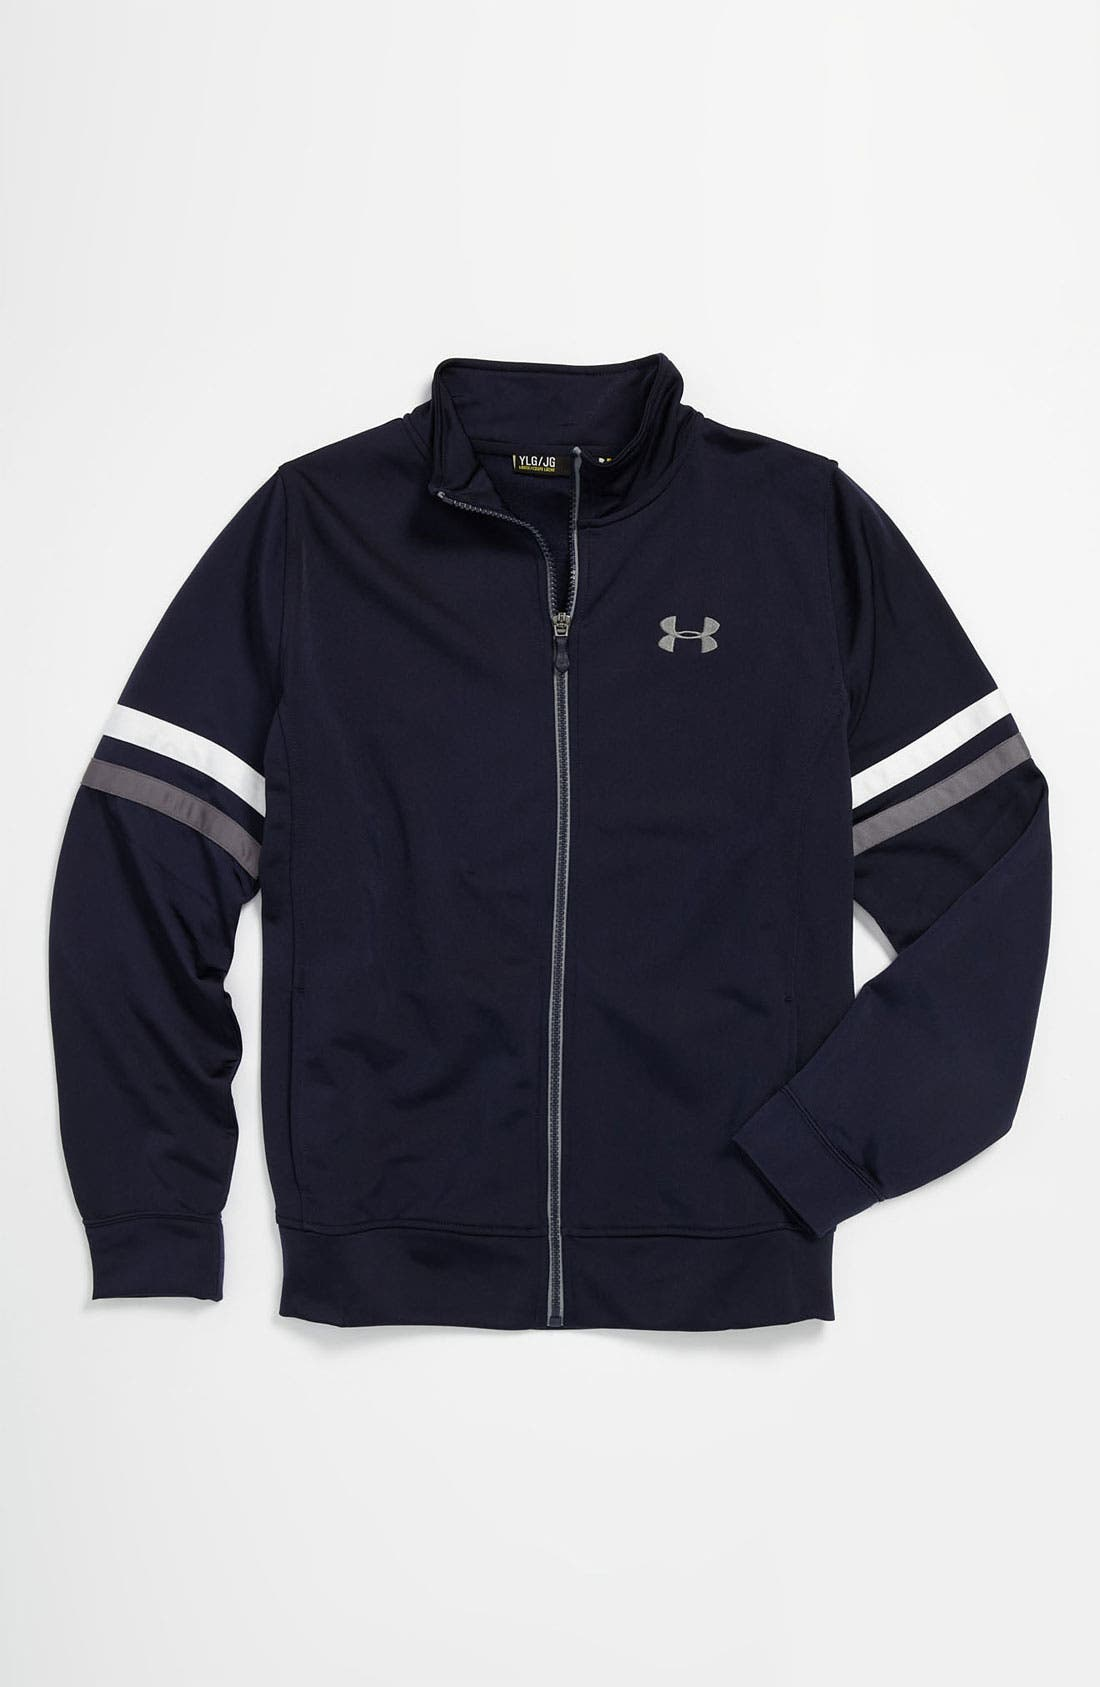 Alternate Image 1 Selected - Under Armour Zip Jacket (Big Boys)